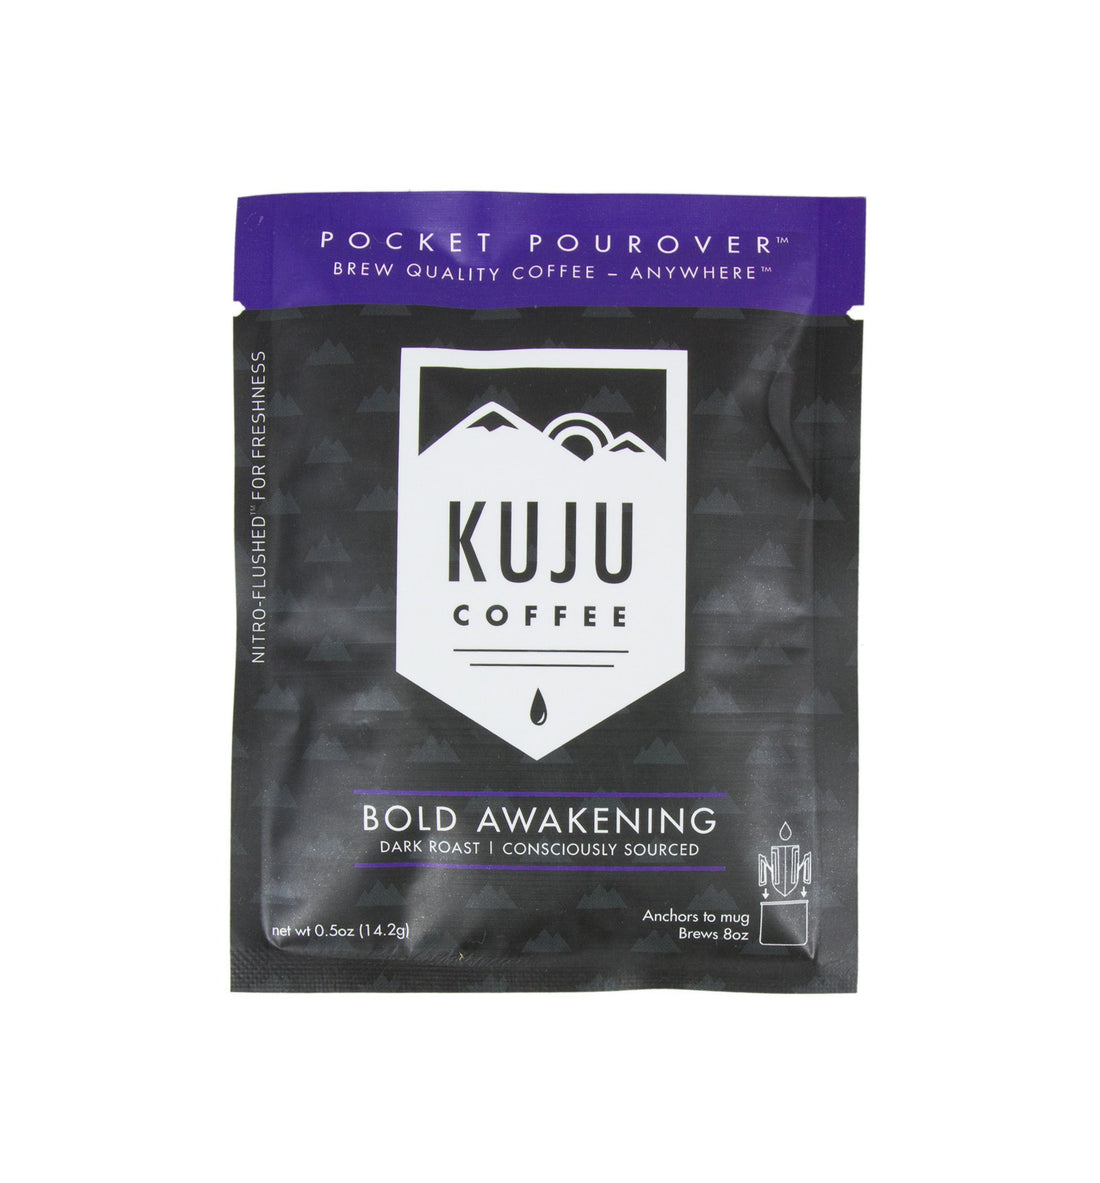 Kuju Coffee Pocket Pourover, Bold Awakening - Food: Coffee - Iron and Resin